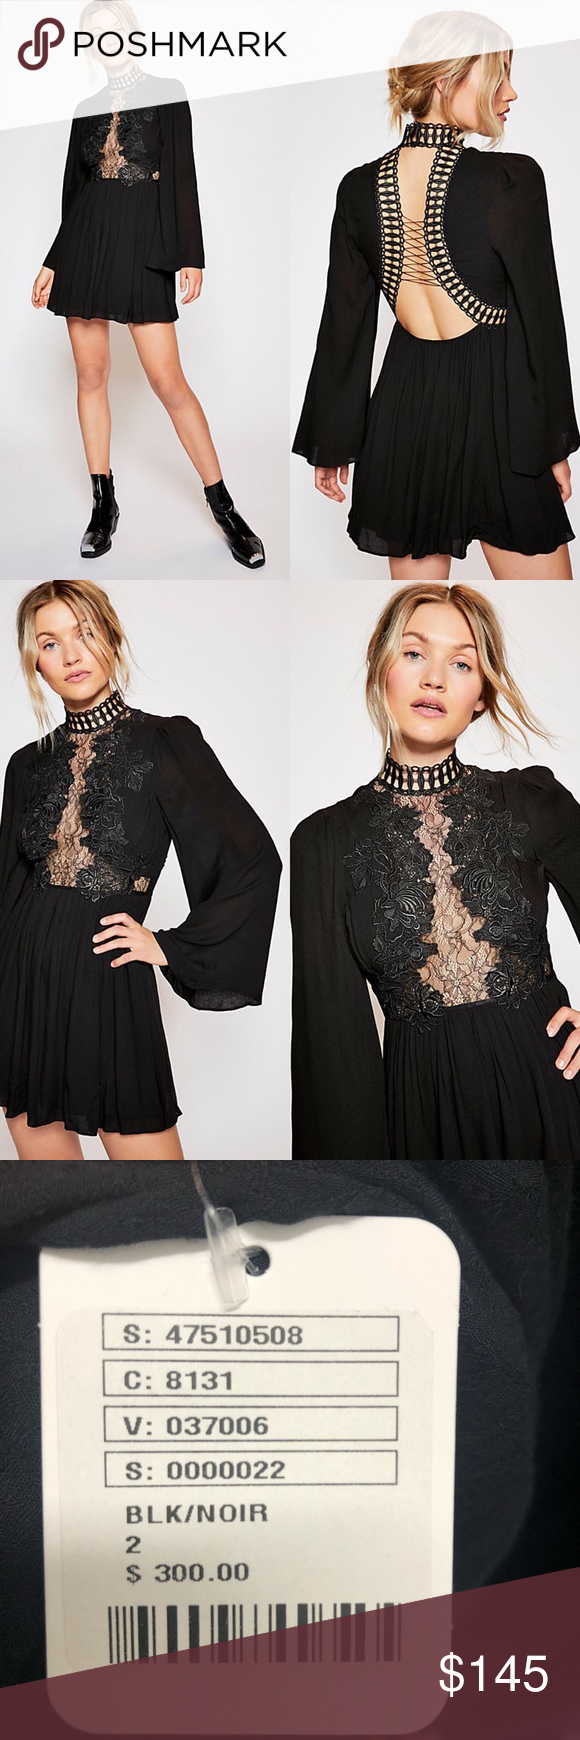 4c354534737a Free People Divine Mini Dress Black Lace Collar NWT Size 2 Romantic bell  sleeve mini dress featuring a sheer lace inset at the bodice and an open  back with ...